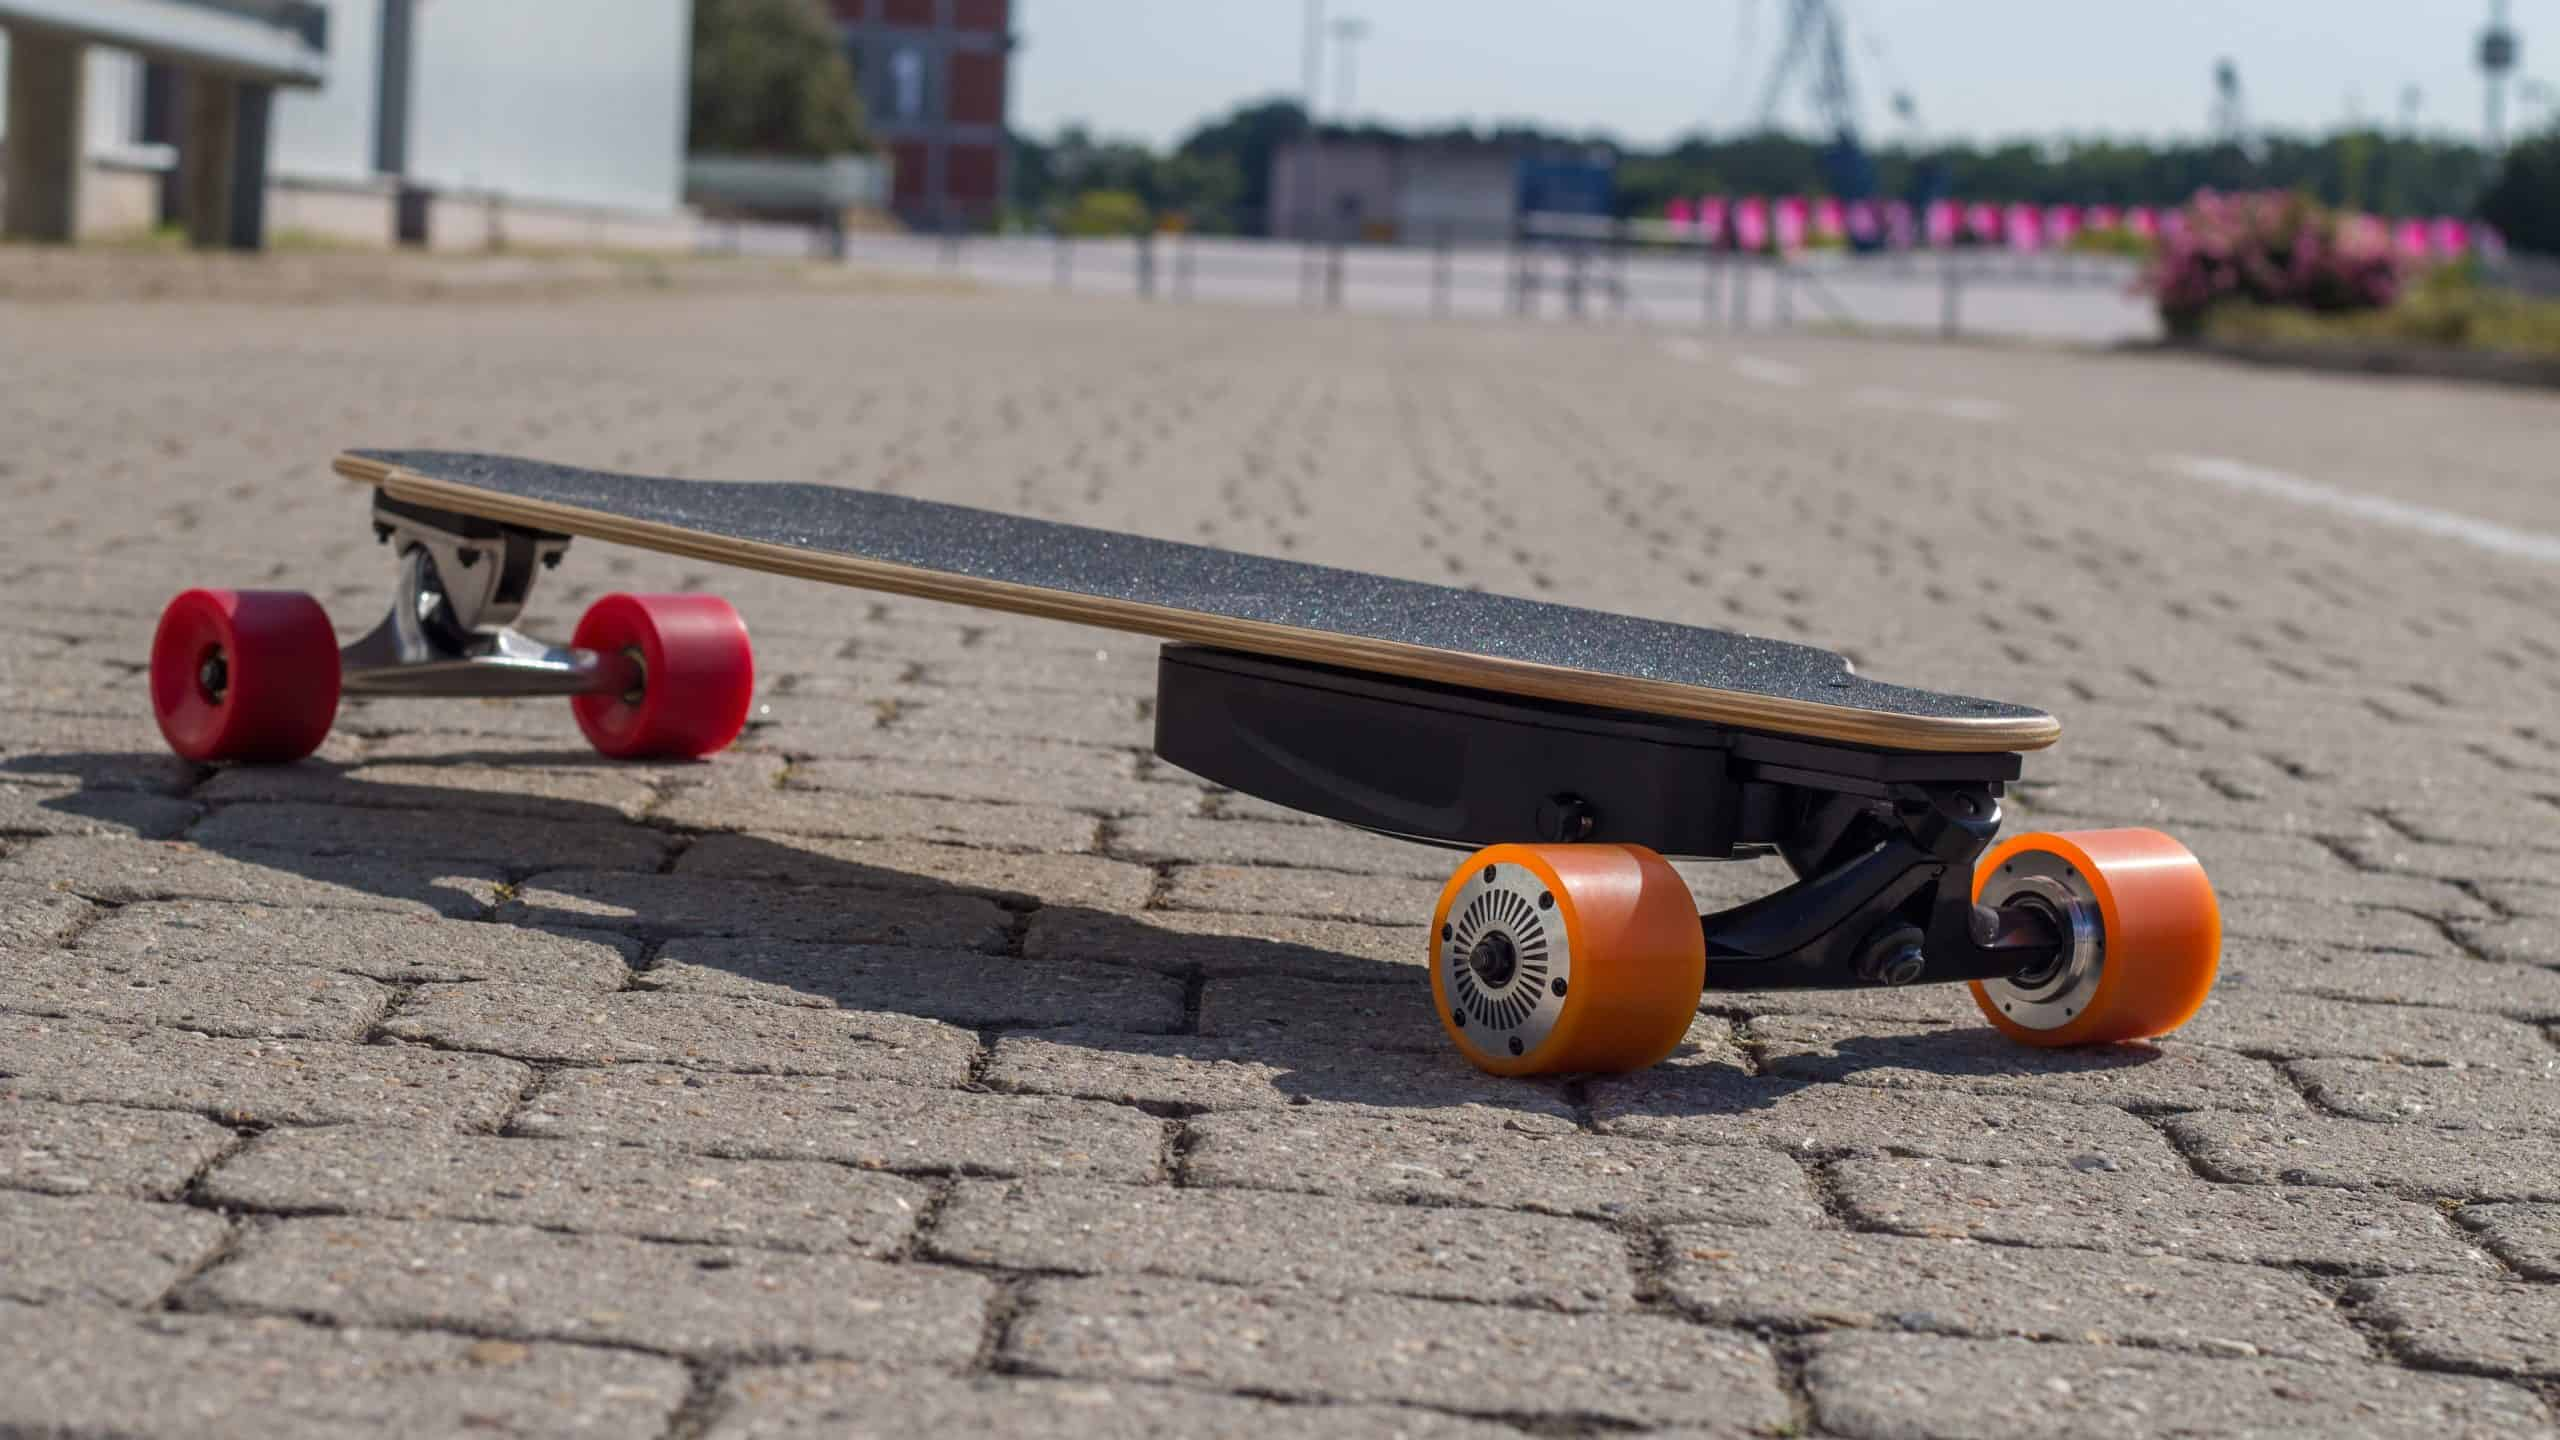 What Mistakes To Avoid To Make An Electric Skateboard Worth Your Money?